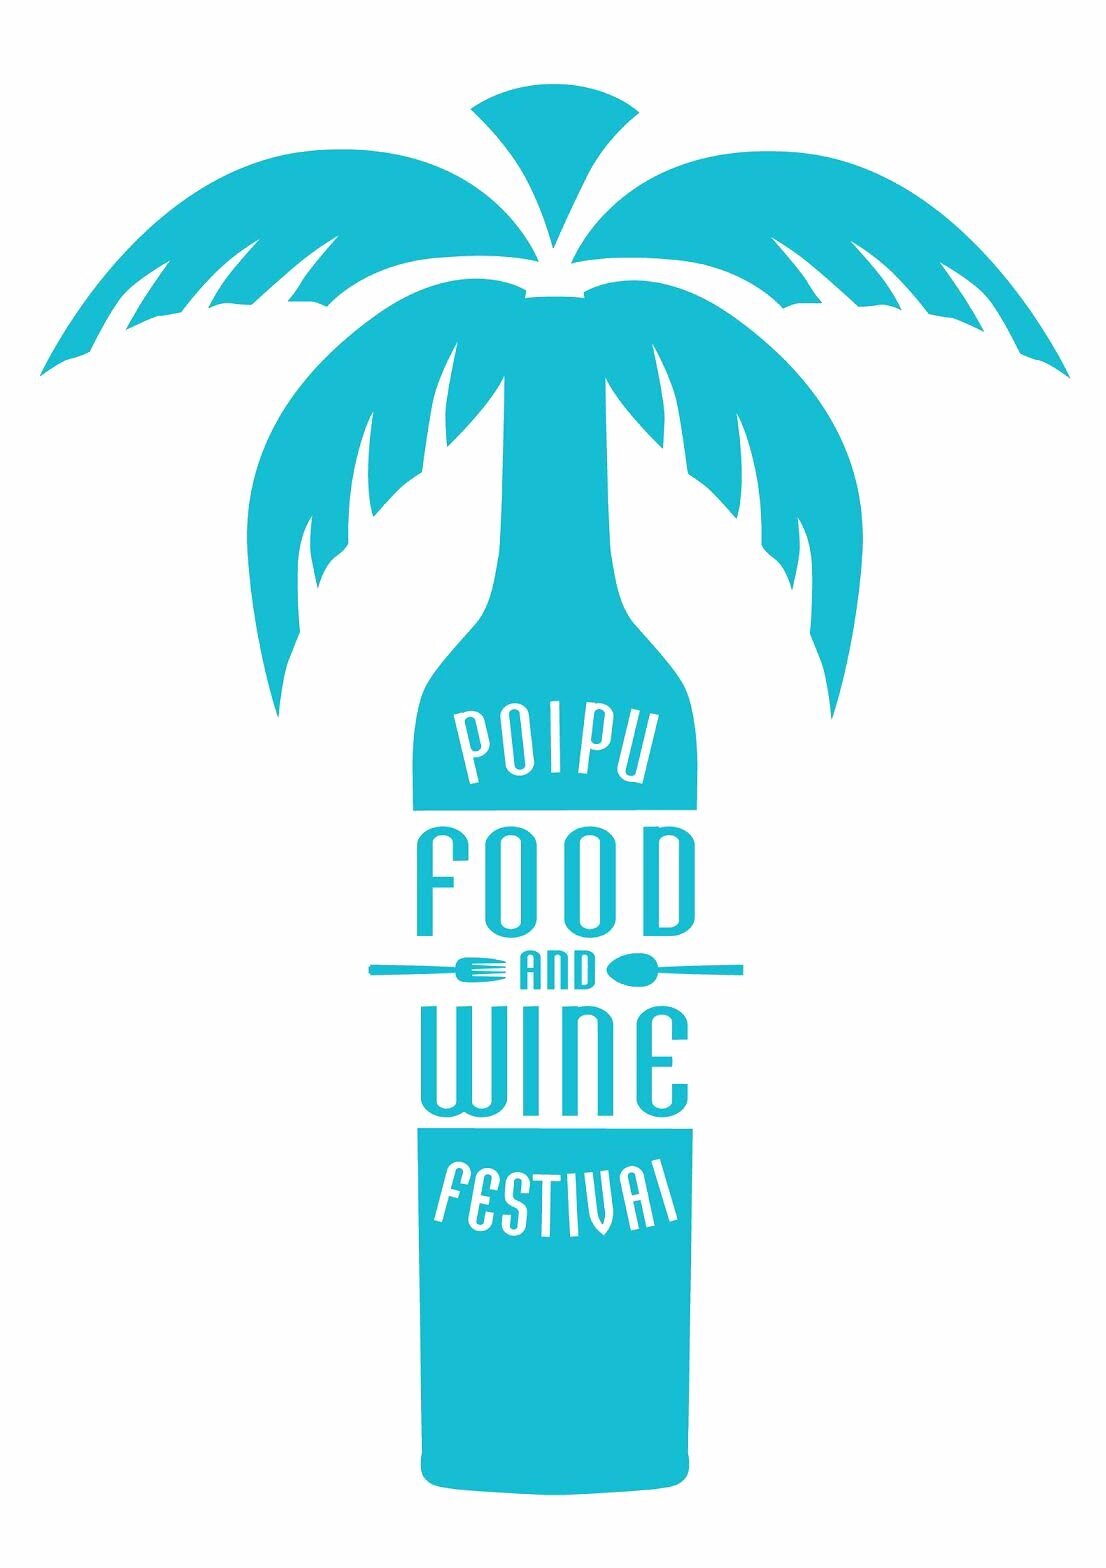 Poipu Food and Wine Festival